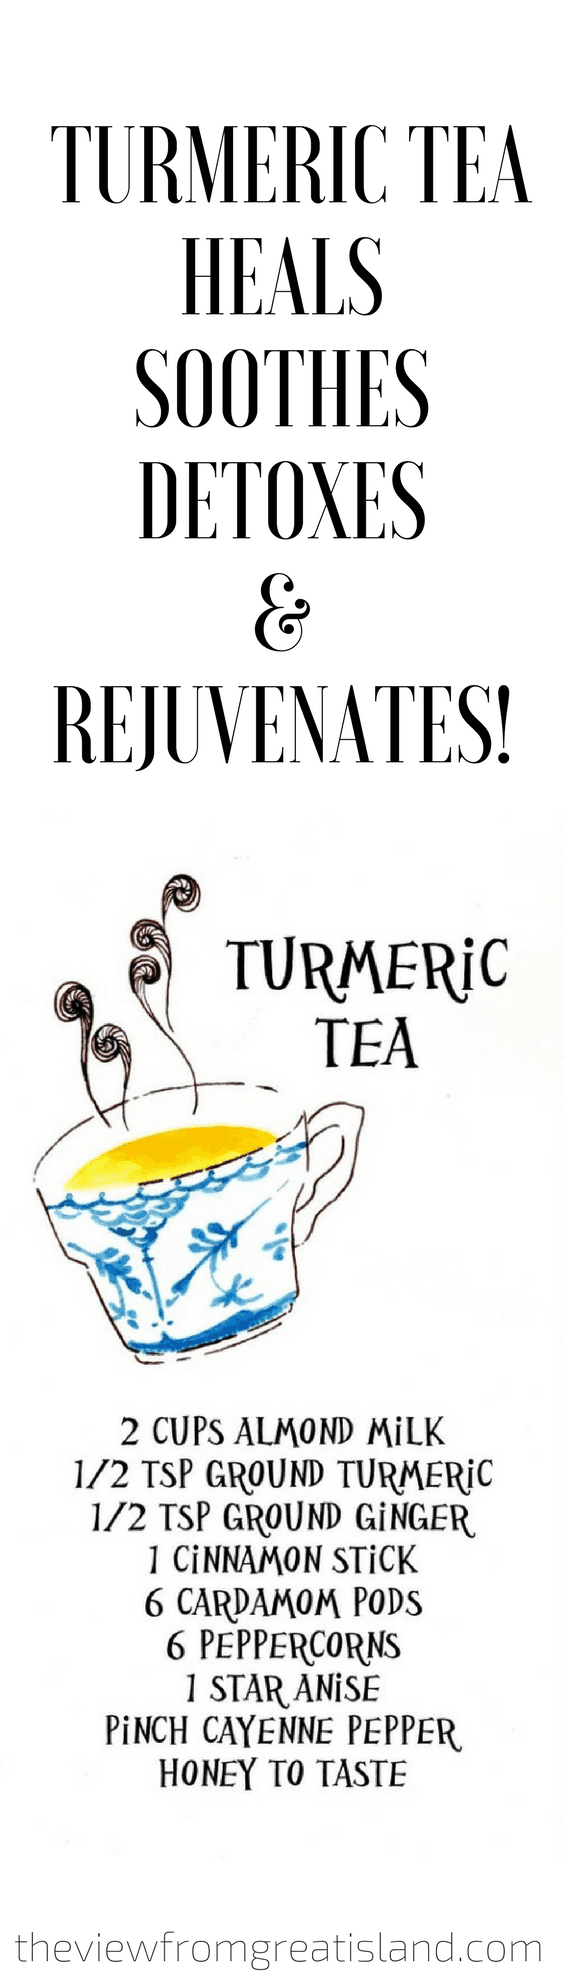 Turmeric Tea ~ Its anti-inflammatory properties are legendary, so give this nurturing tea a try if you're stuffed up, sore, or coughing. It makes a great calming bedtime drink, too, even if you're perfectly healthy. #healthy #healing #detox #turmeric #turmericmilk #goldenmilk #fluremedy #homeremedy #sleeptea #tea #ginger